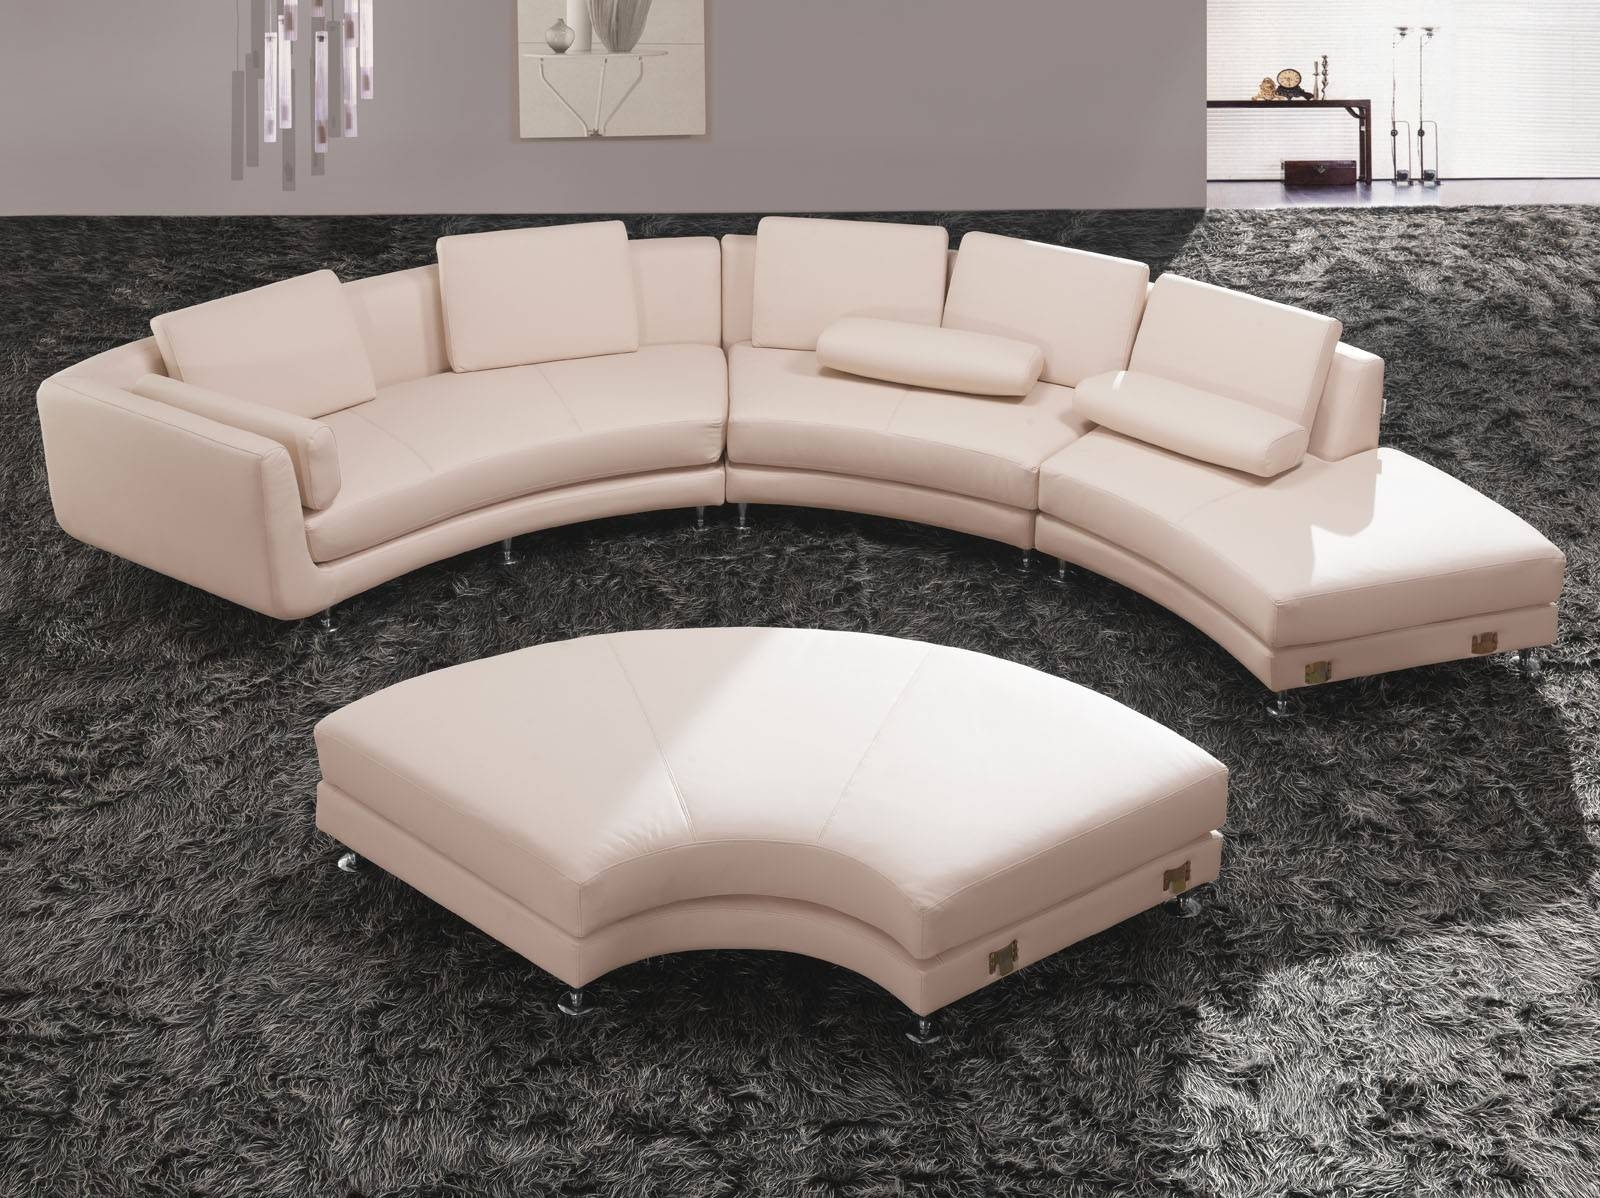 Furniture: Curved Sectional Sofa | Small Curved Couch | Curved throughout Small Curved Sectional Sofas (Image 7 of 15)